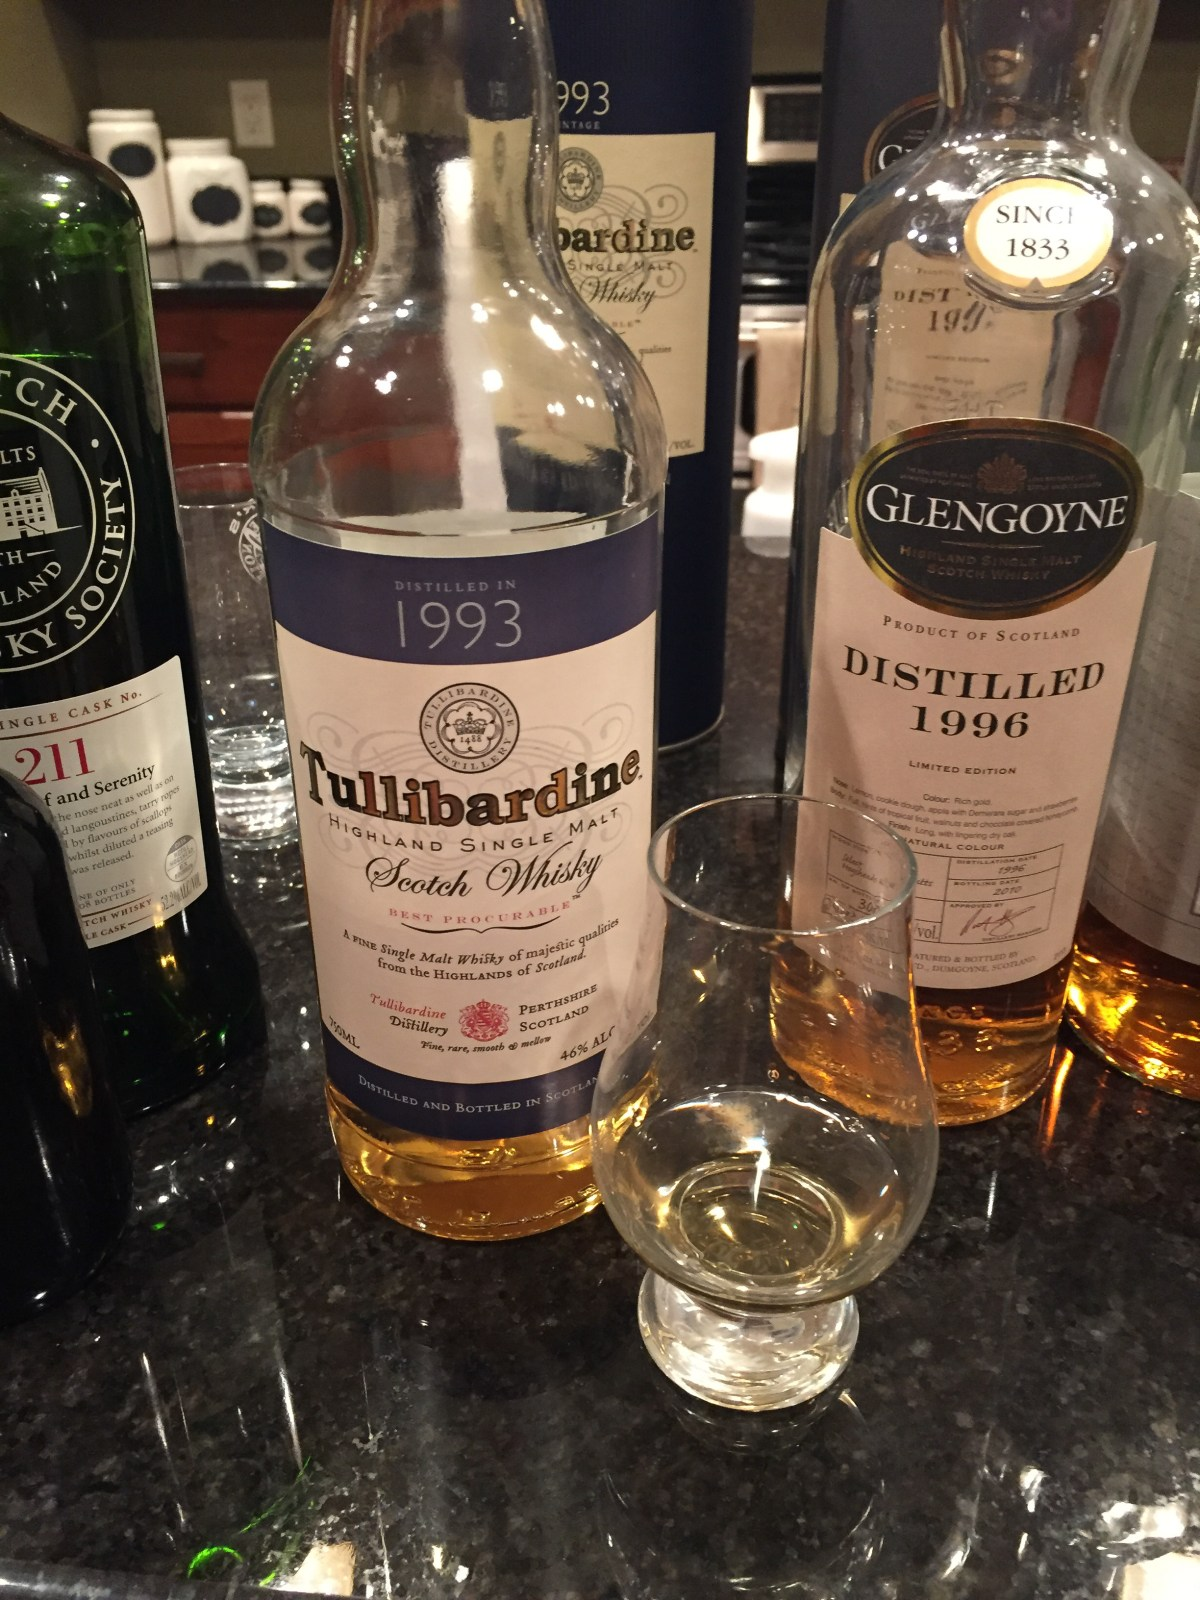 Tullibardine 1993 Vintage Review